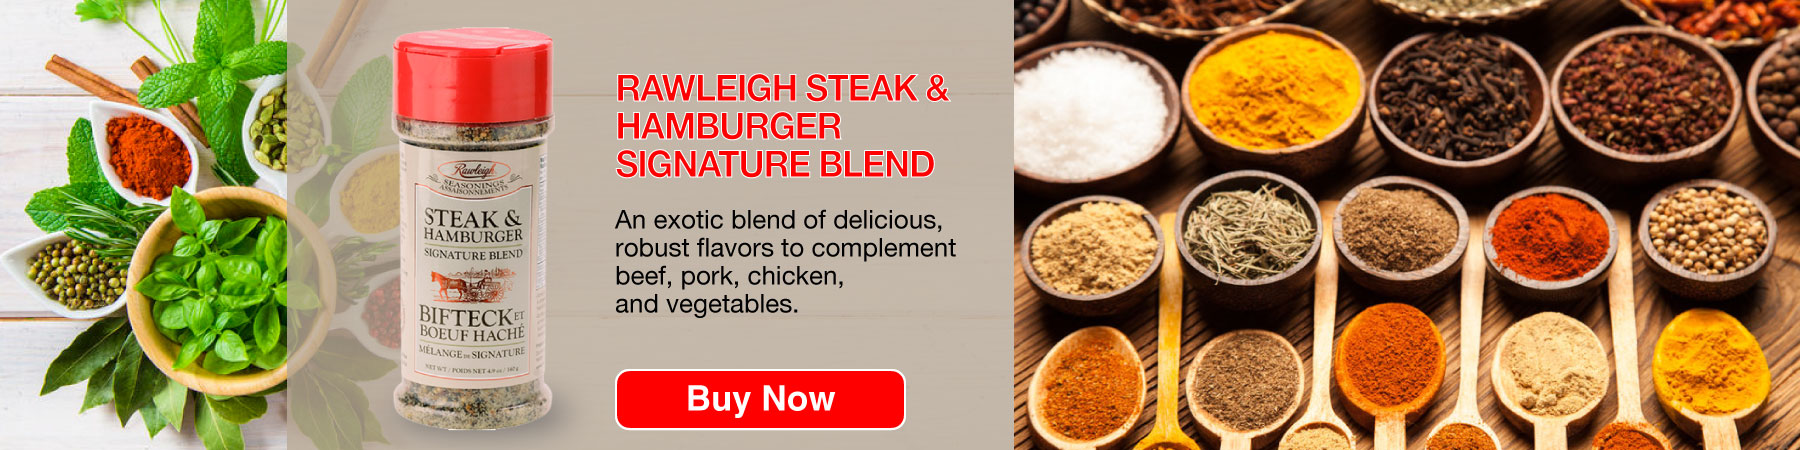 Rawleigh Steak & Hamburger grill Blend